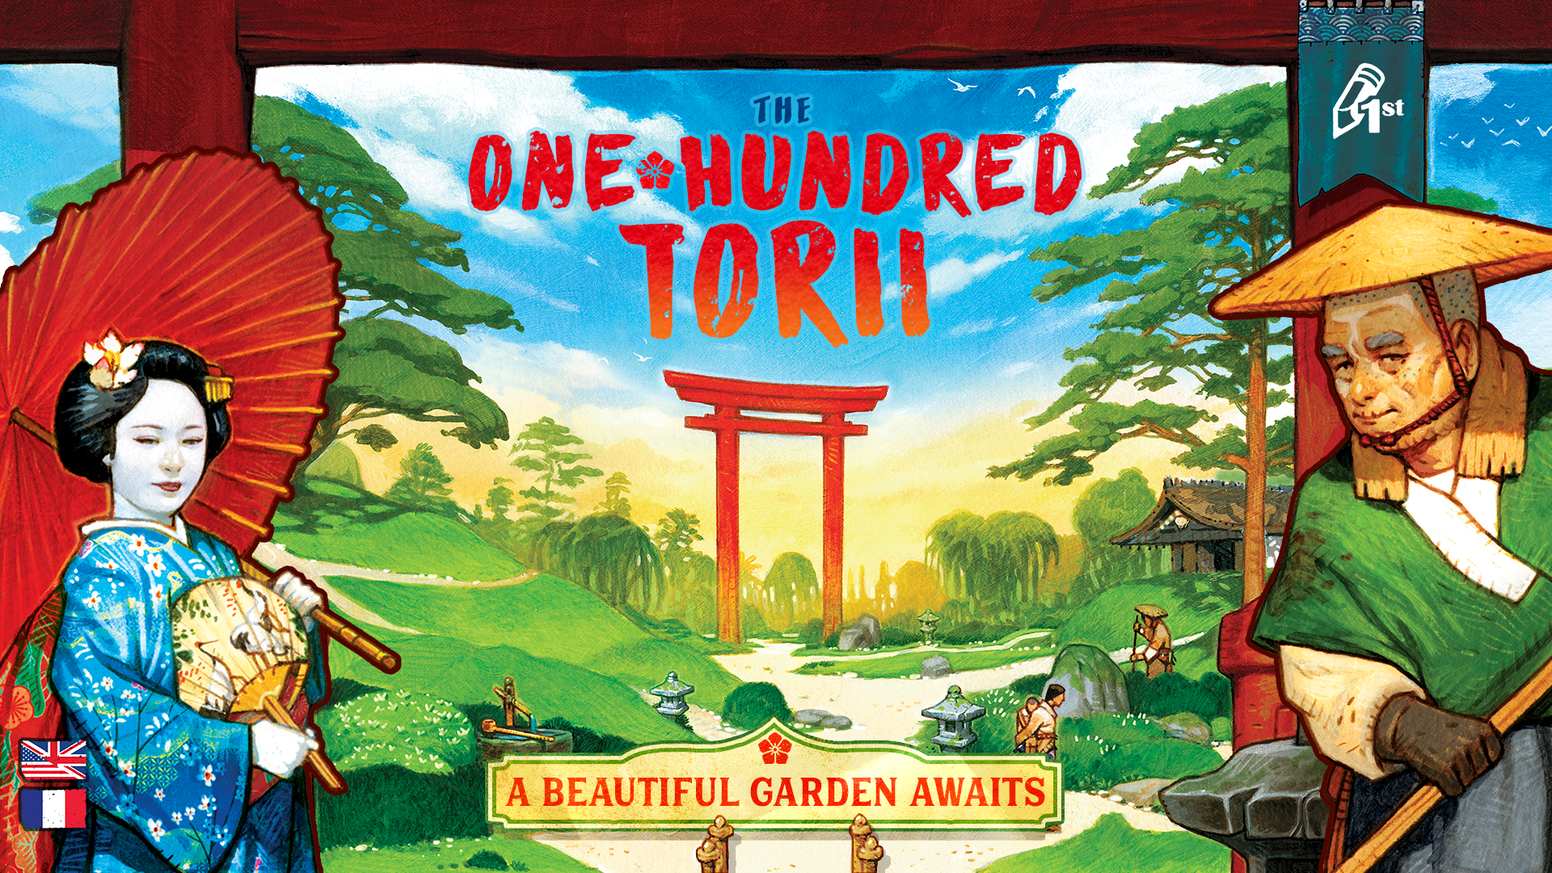 Lay tiles and create paths through a Japanese garden in this beautiful board game.